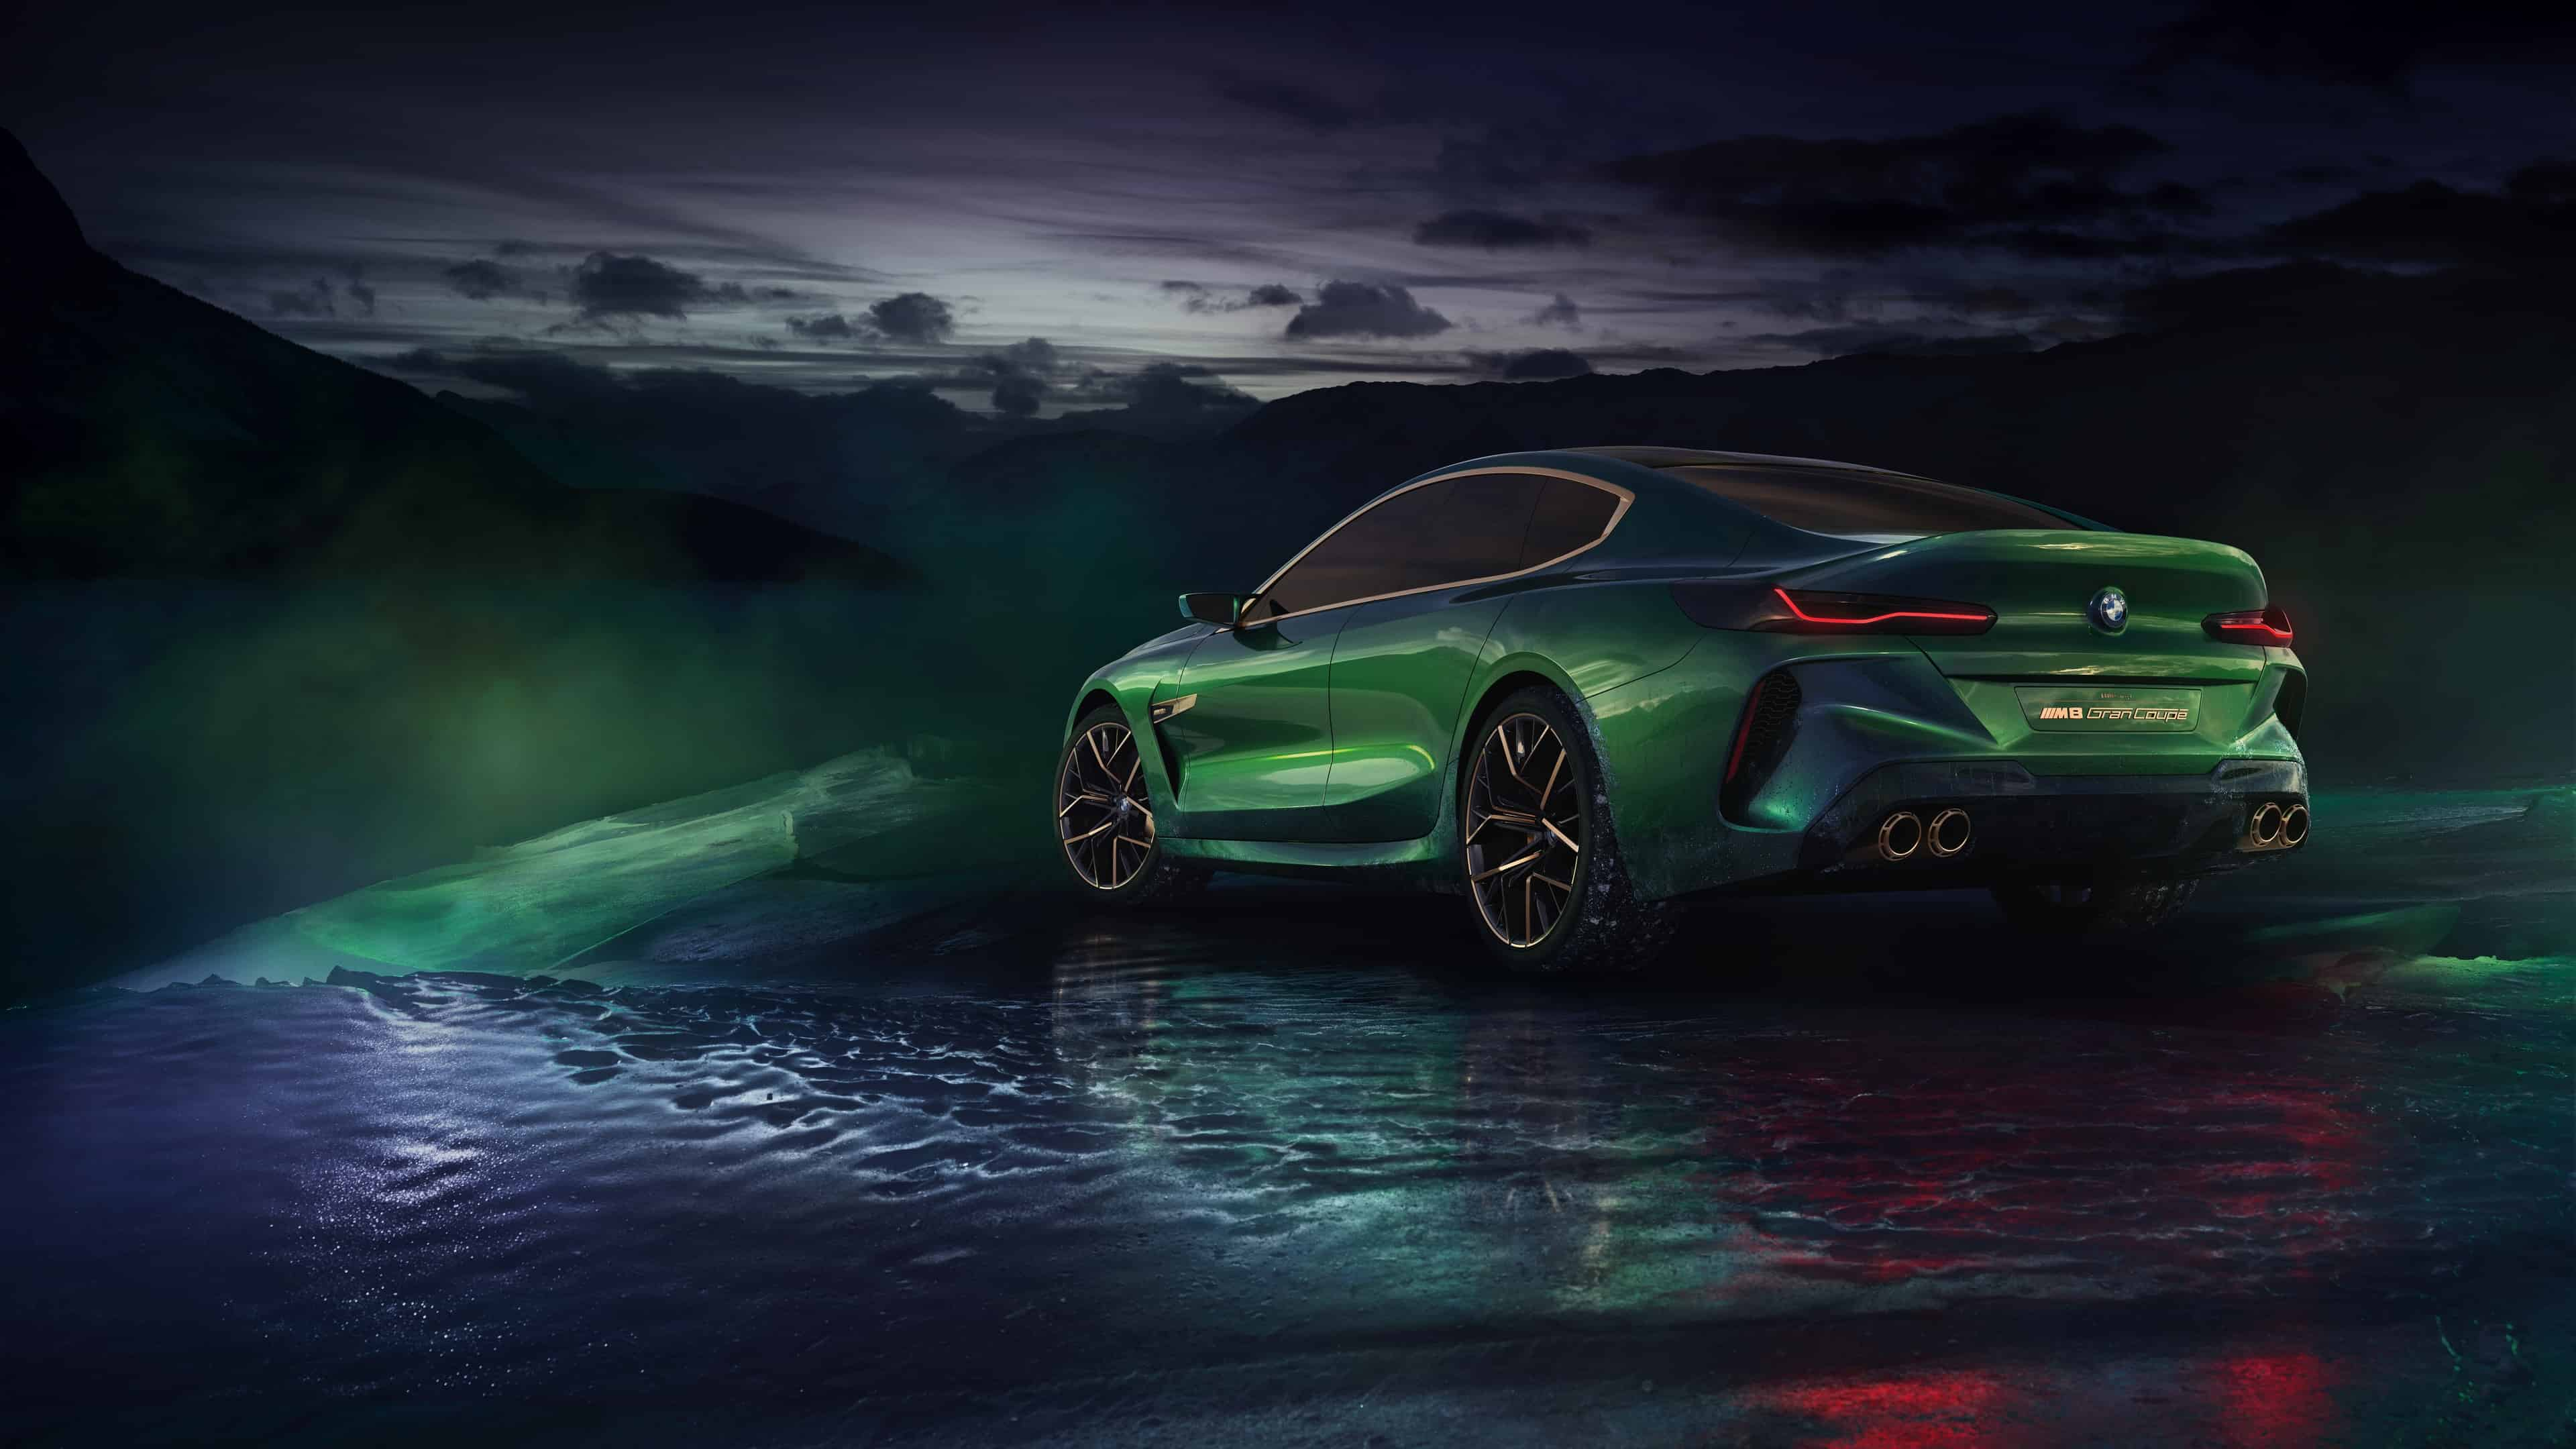 bmw concept m8 gran coupe back uhd 4k wallpaper